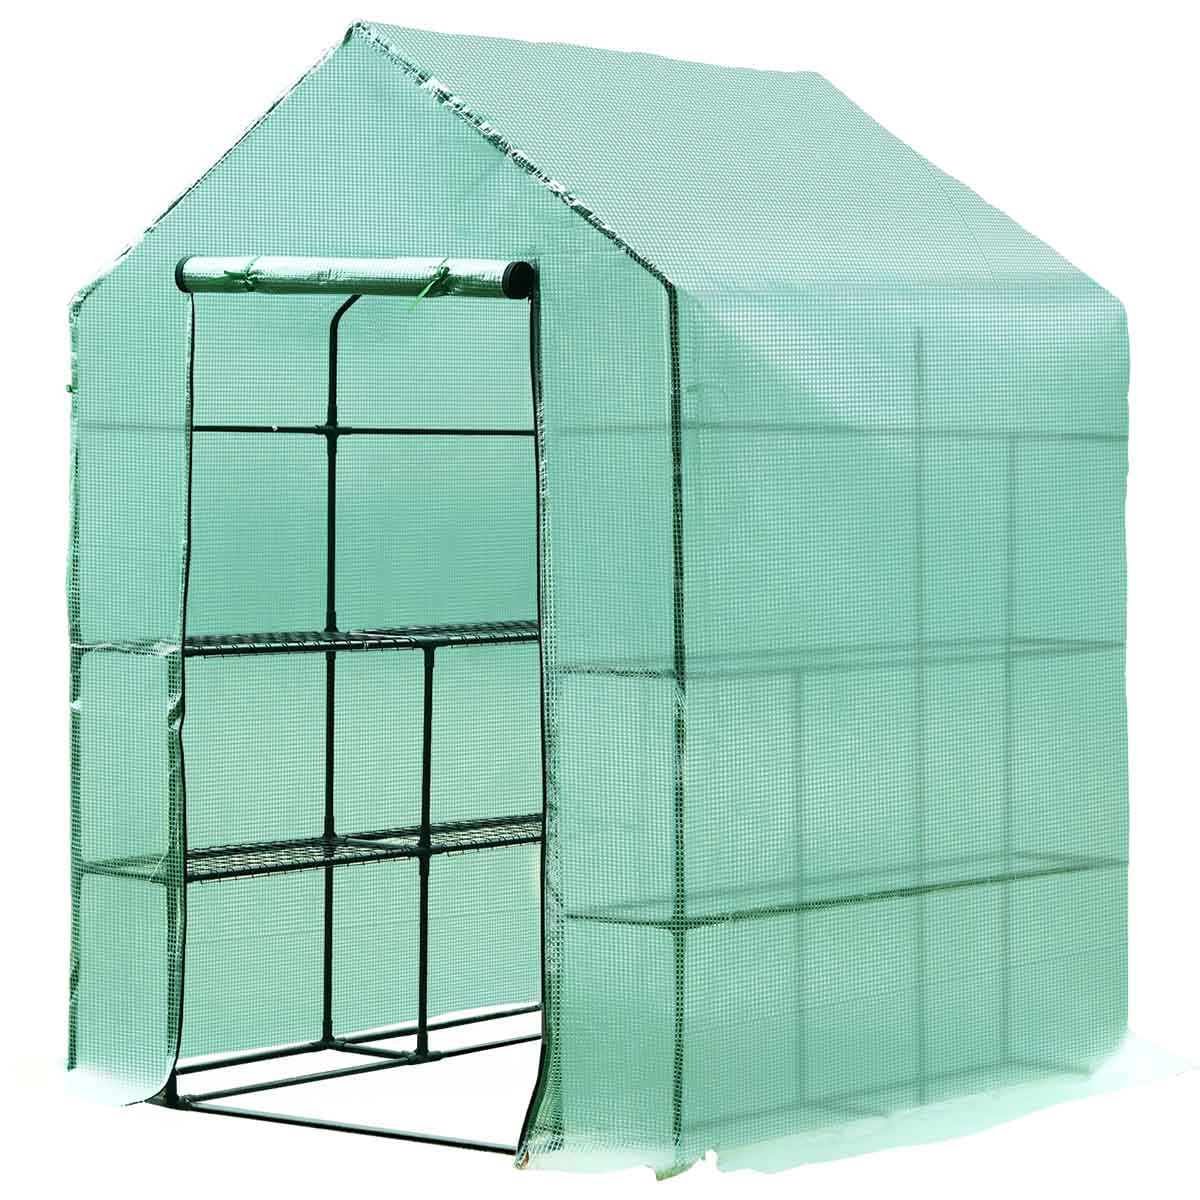 Outsunny 1.4 x 1.4m Greenhouse Grow Tent with Steel Frame